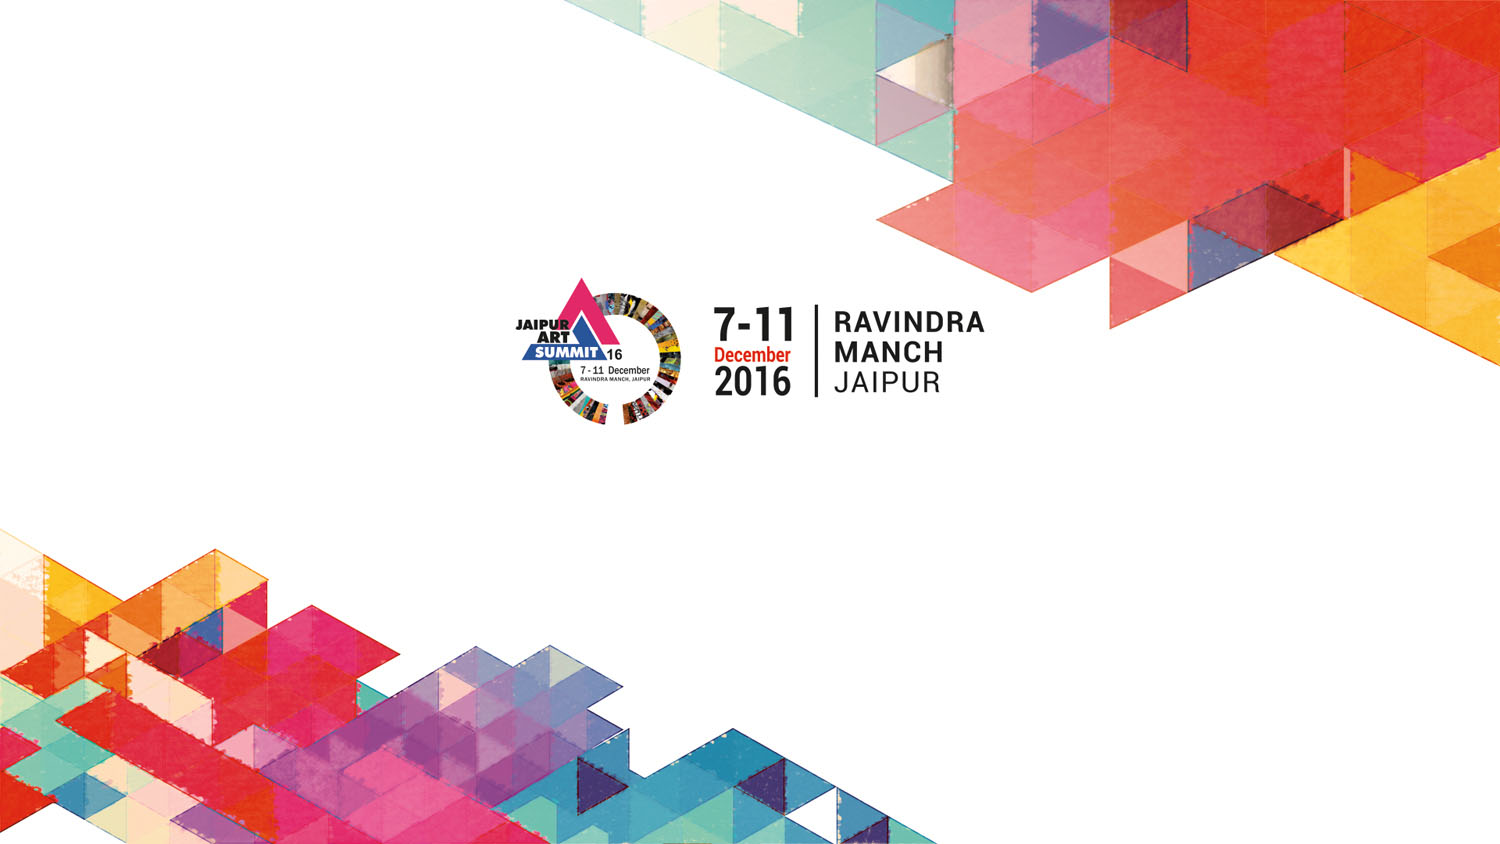 Jaipur Art Summit 2016